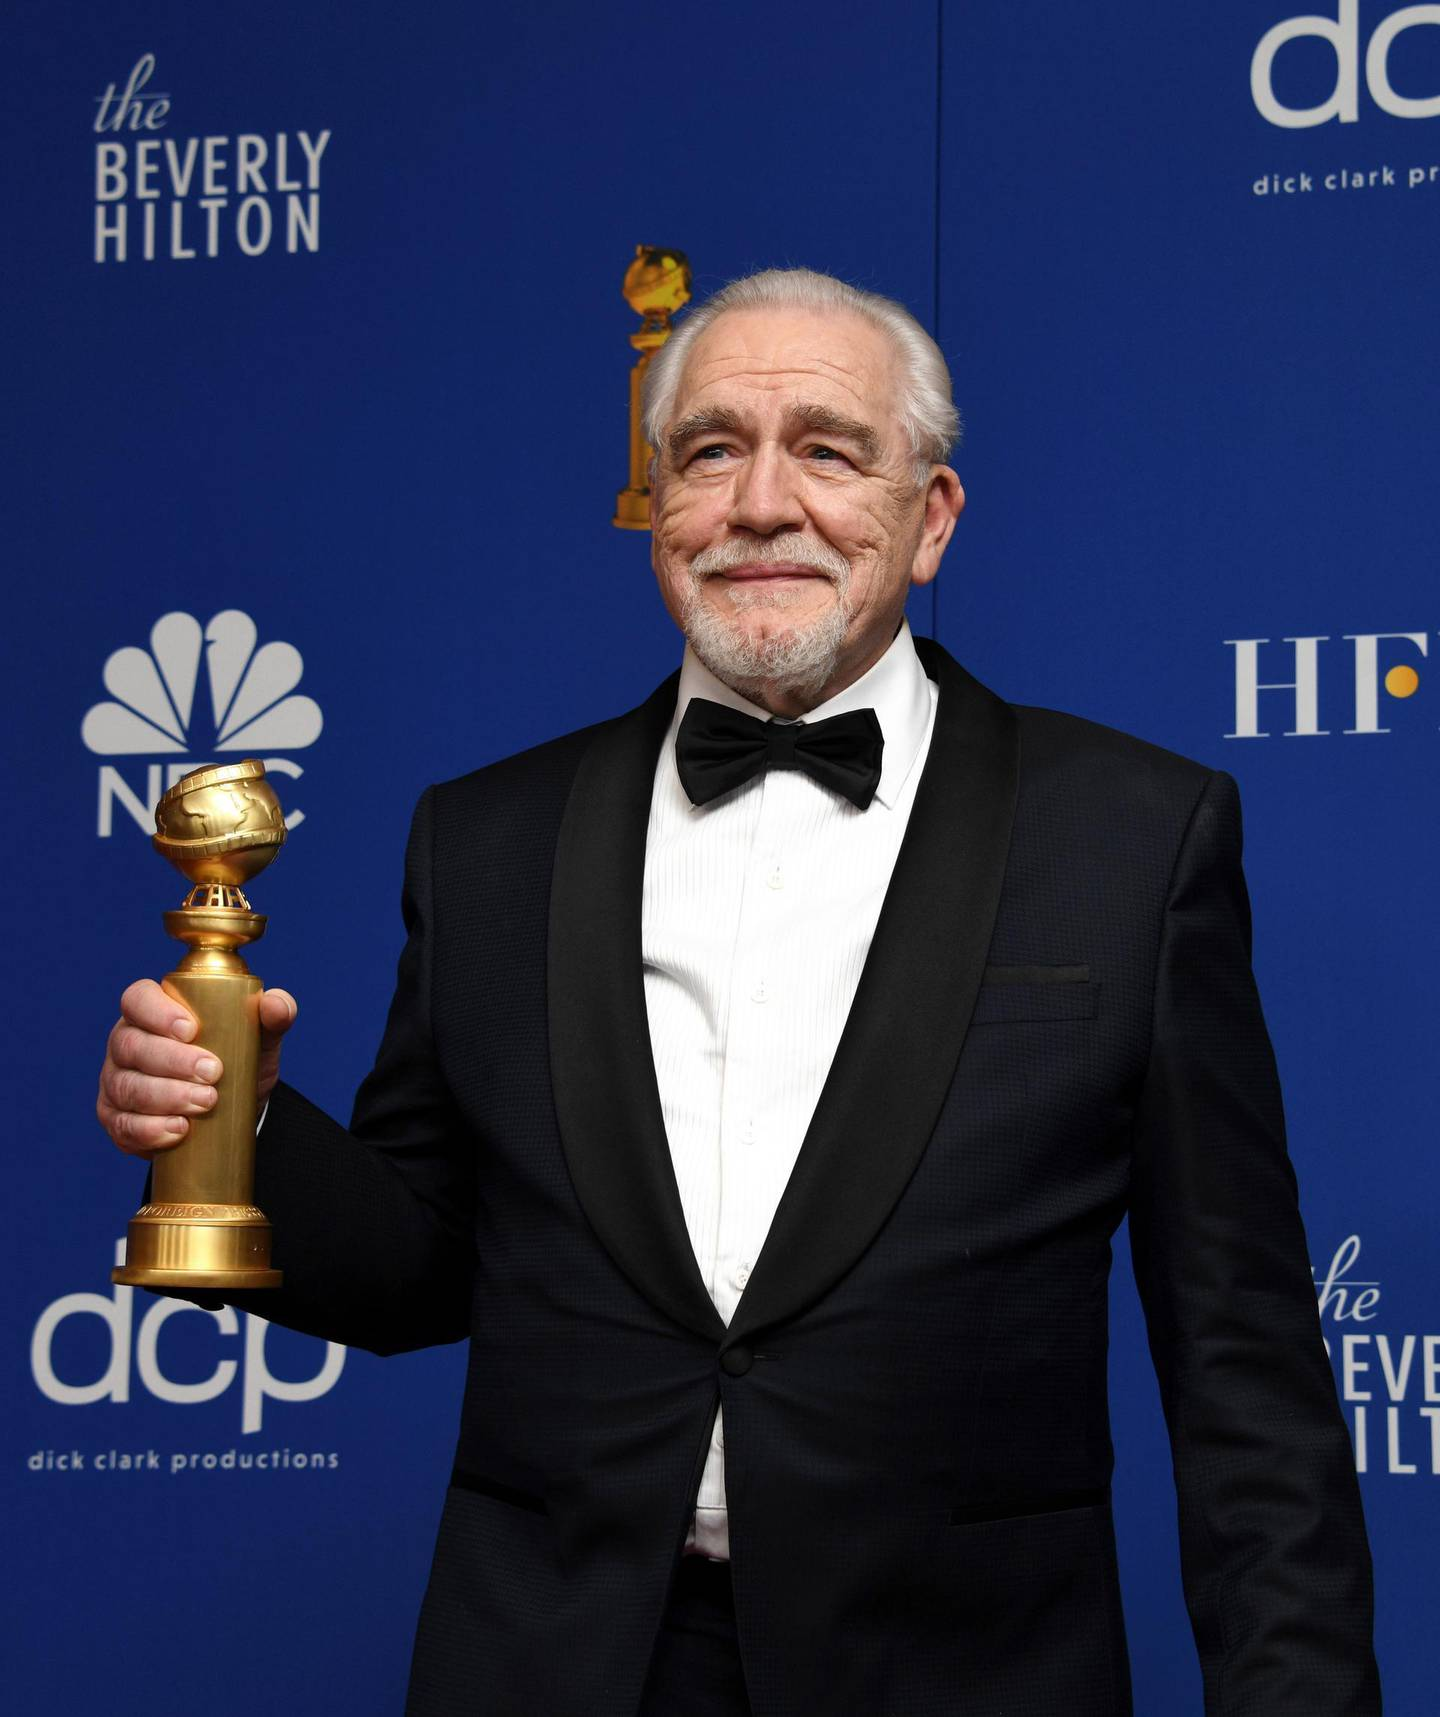 epa08106242 Brian Cox poses with the Best Performance by an Actor In A Television Series - Drama award in the press room during the 77th annual Golden Globe Awards ceremony at the Beverly Hilton Hotel, in Beverly Hills, California, USA, 05 January 2020.  EPA/CHRISTIAN MONTERROSA